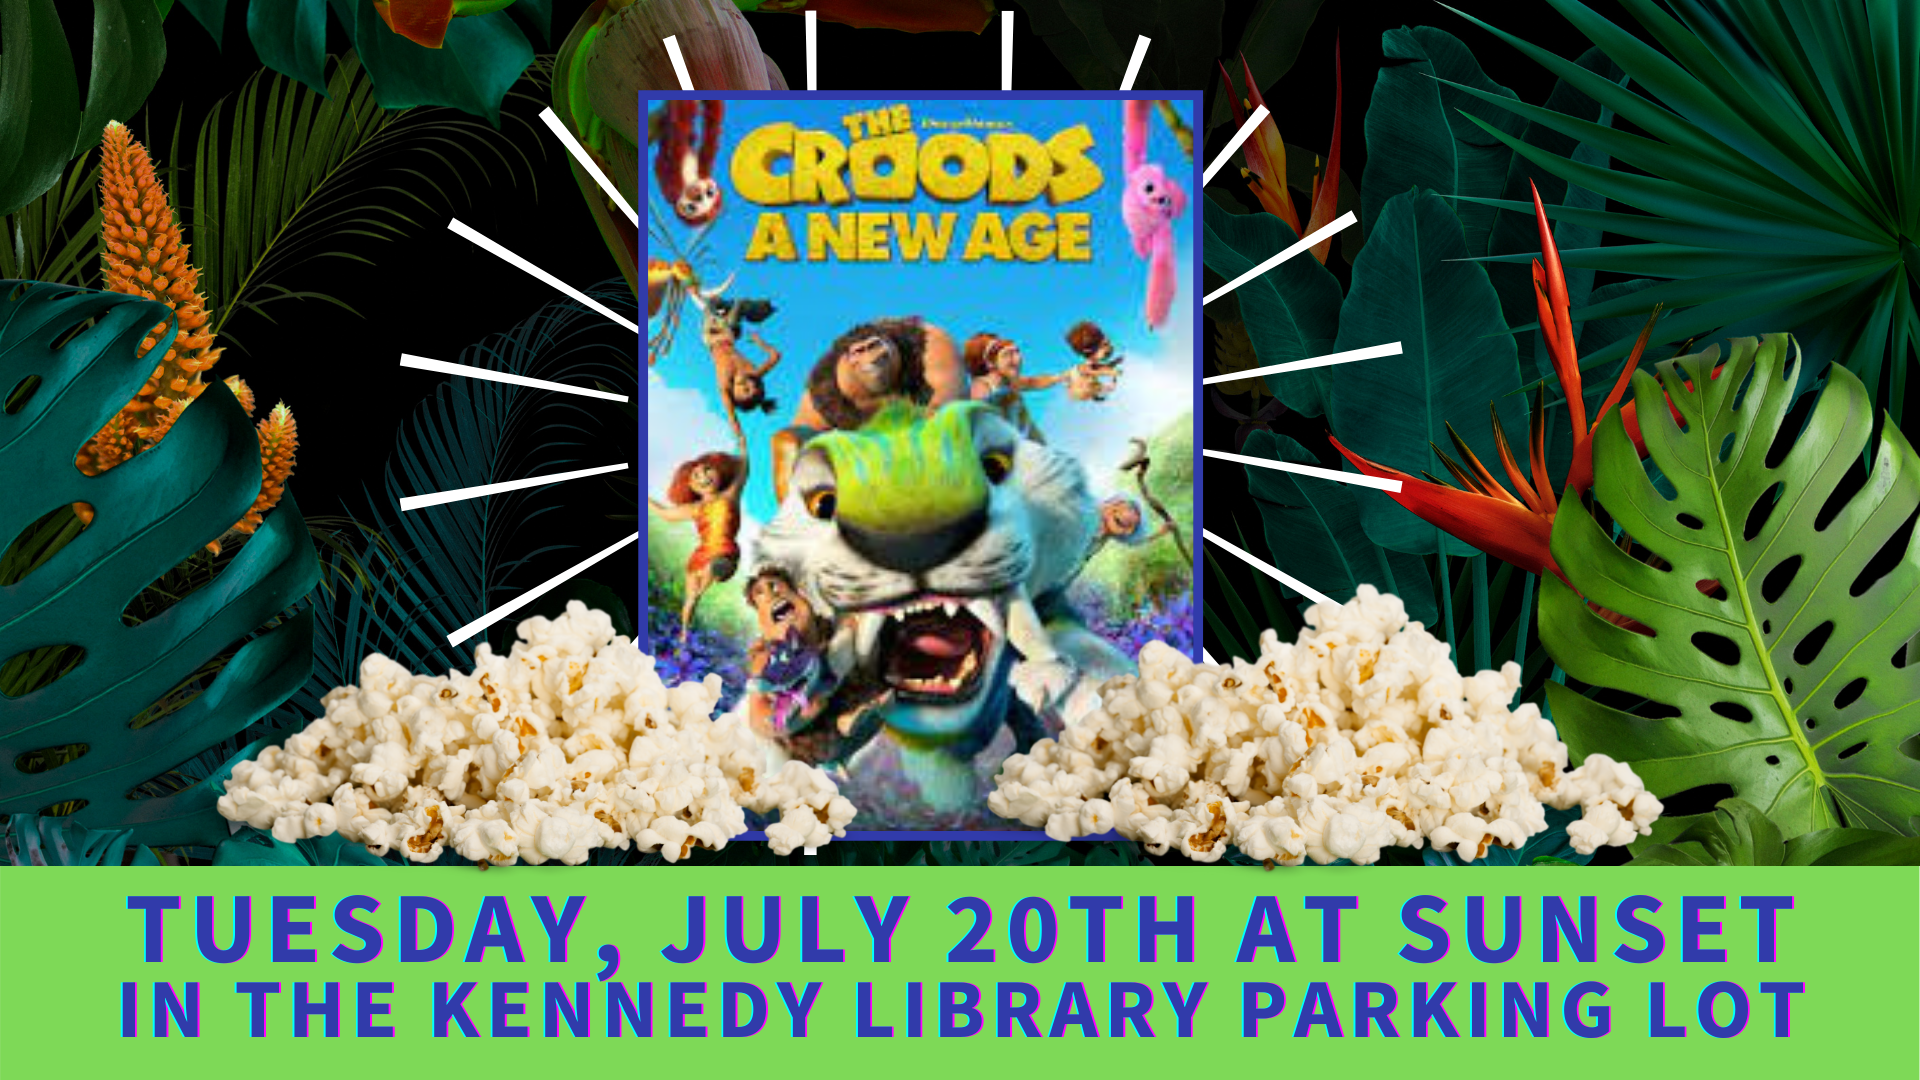 The Croods A New Age Movie Screening